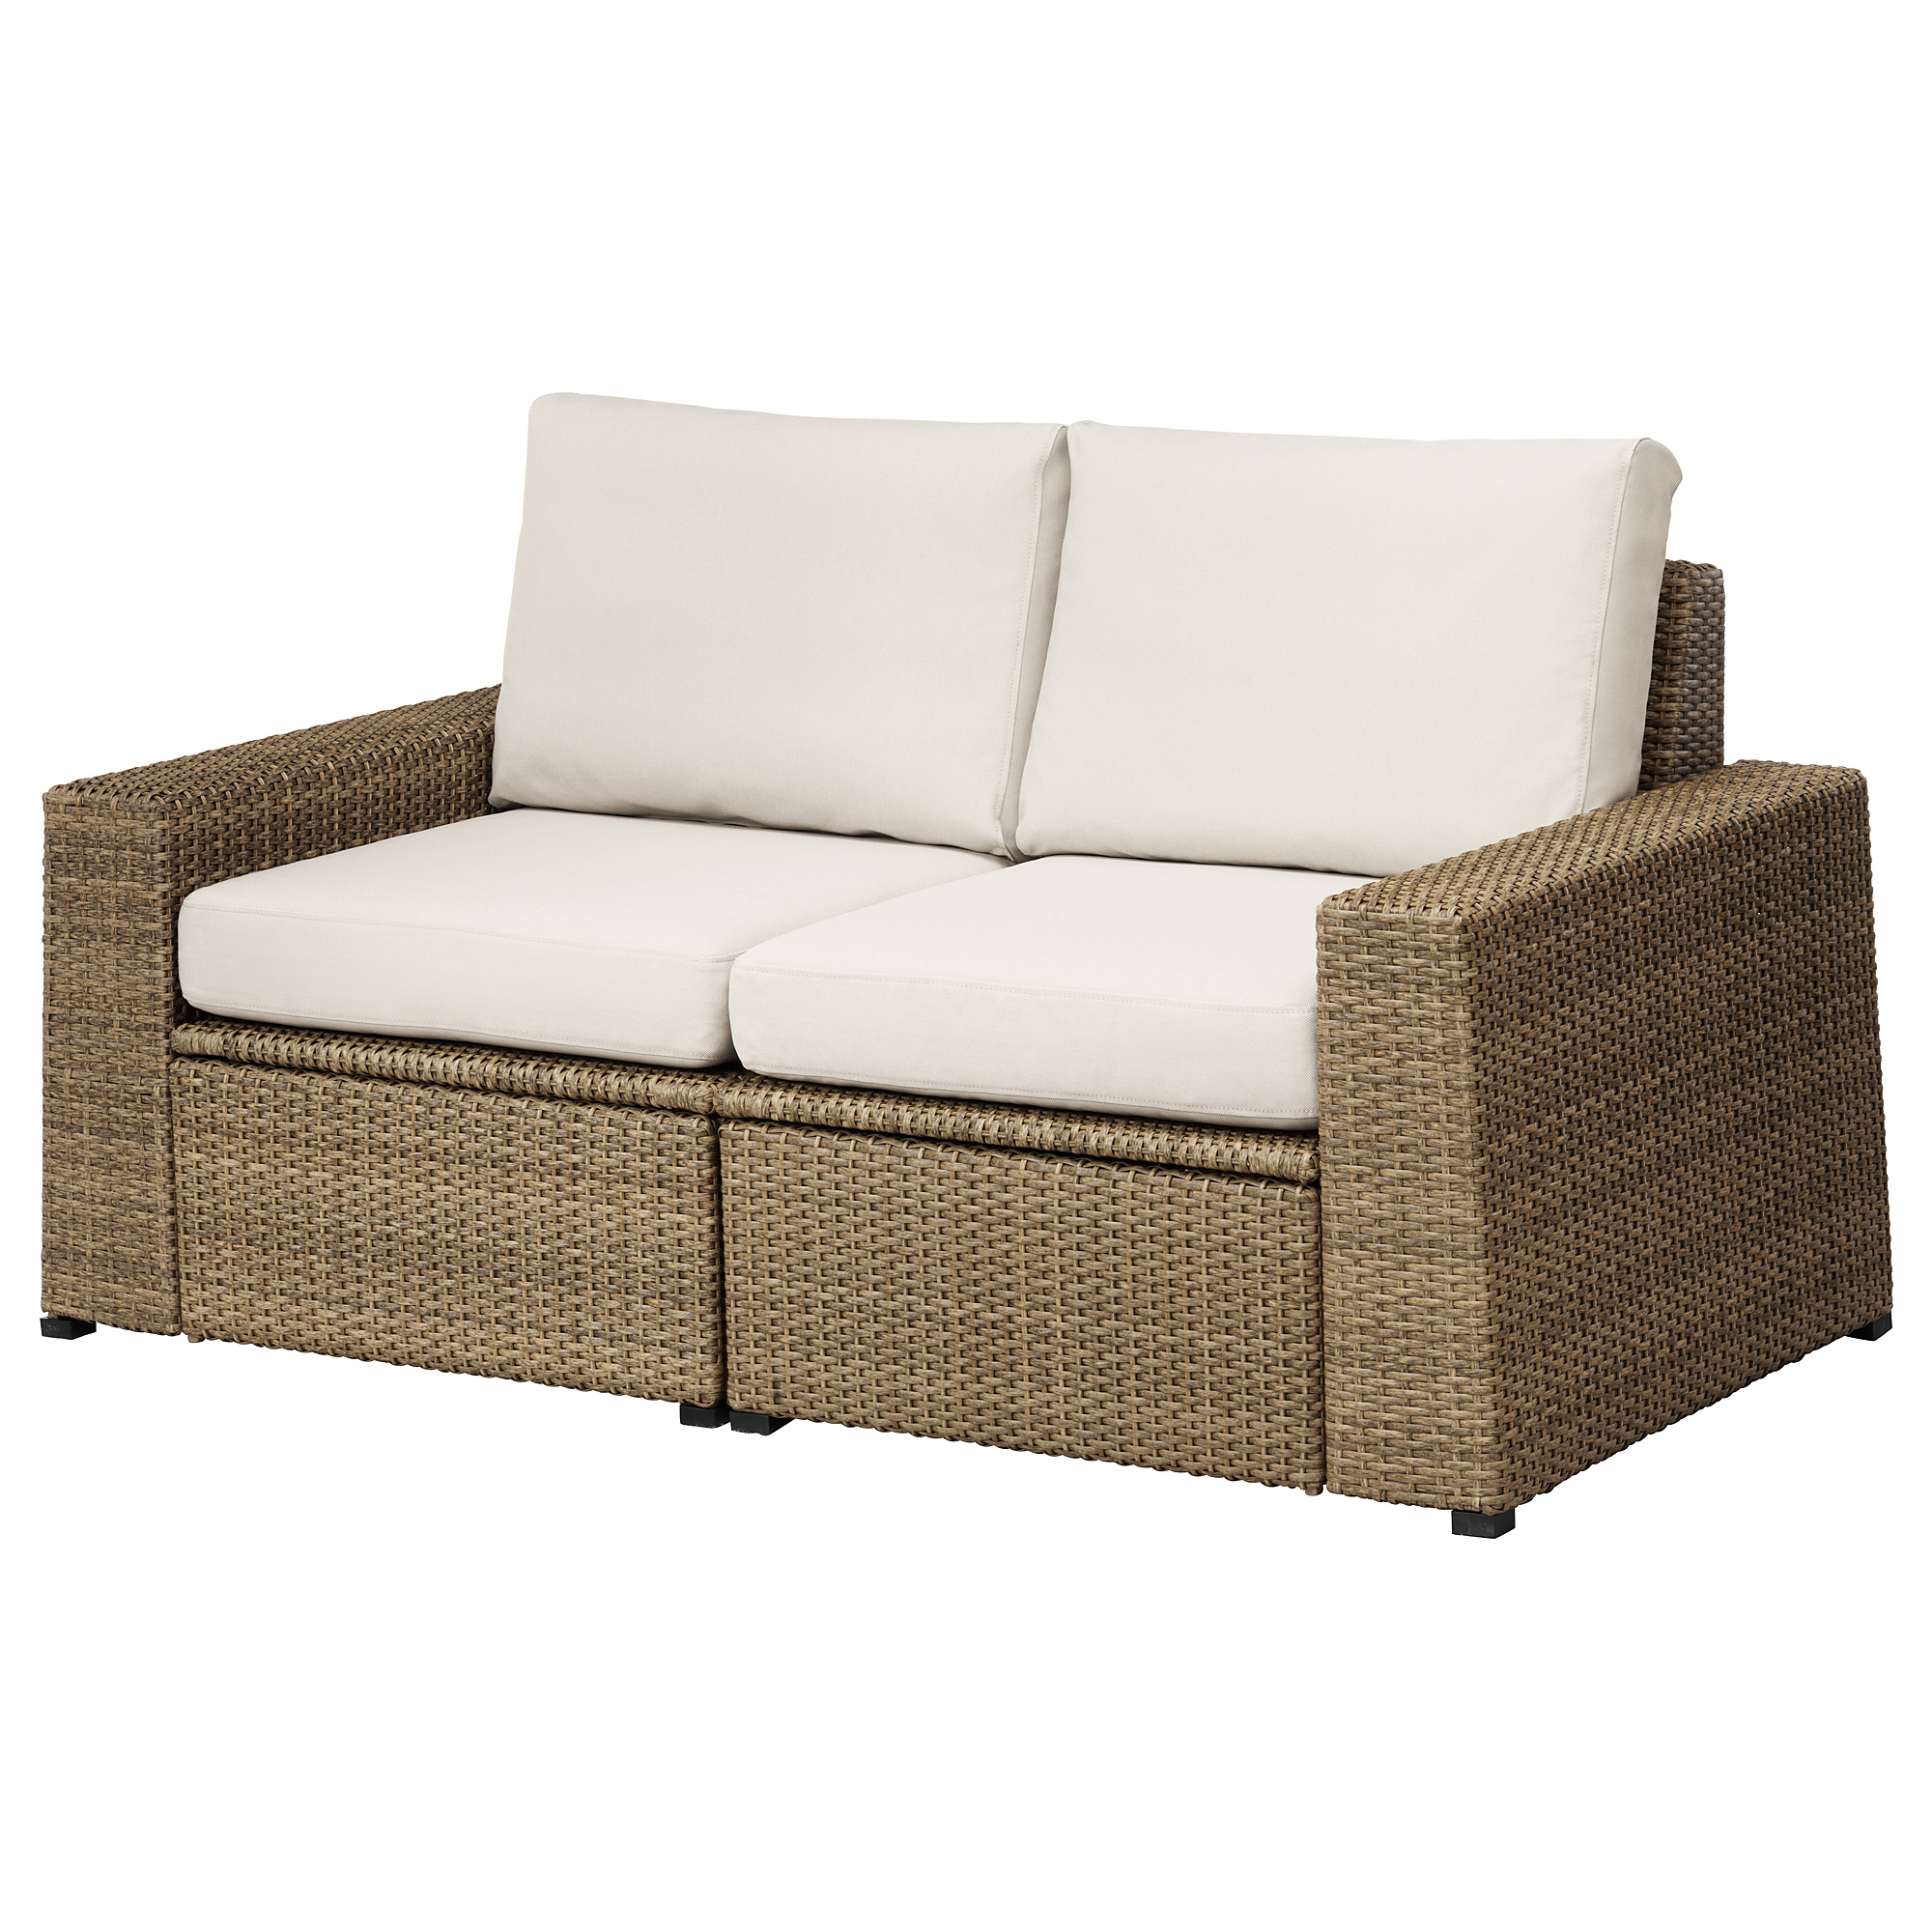 59252374 Sollerön Outdoor Sofa Combinations IKEA khmer in phnom penh cambodia